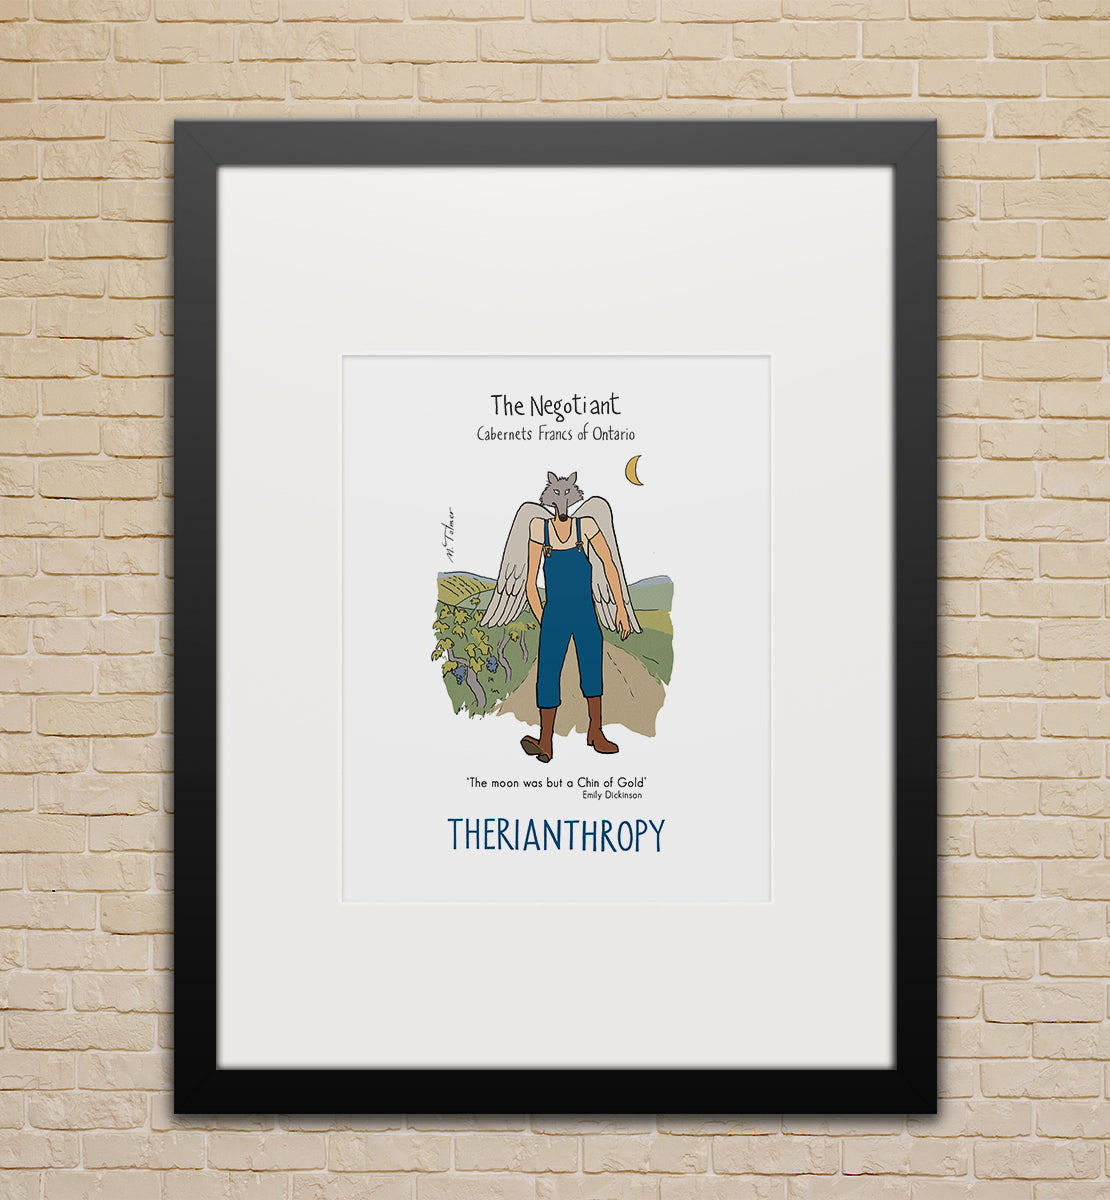 Framed poster (small): The Negotiant